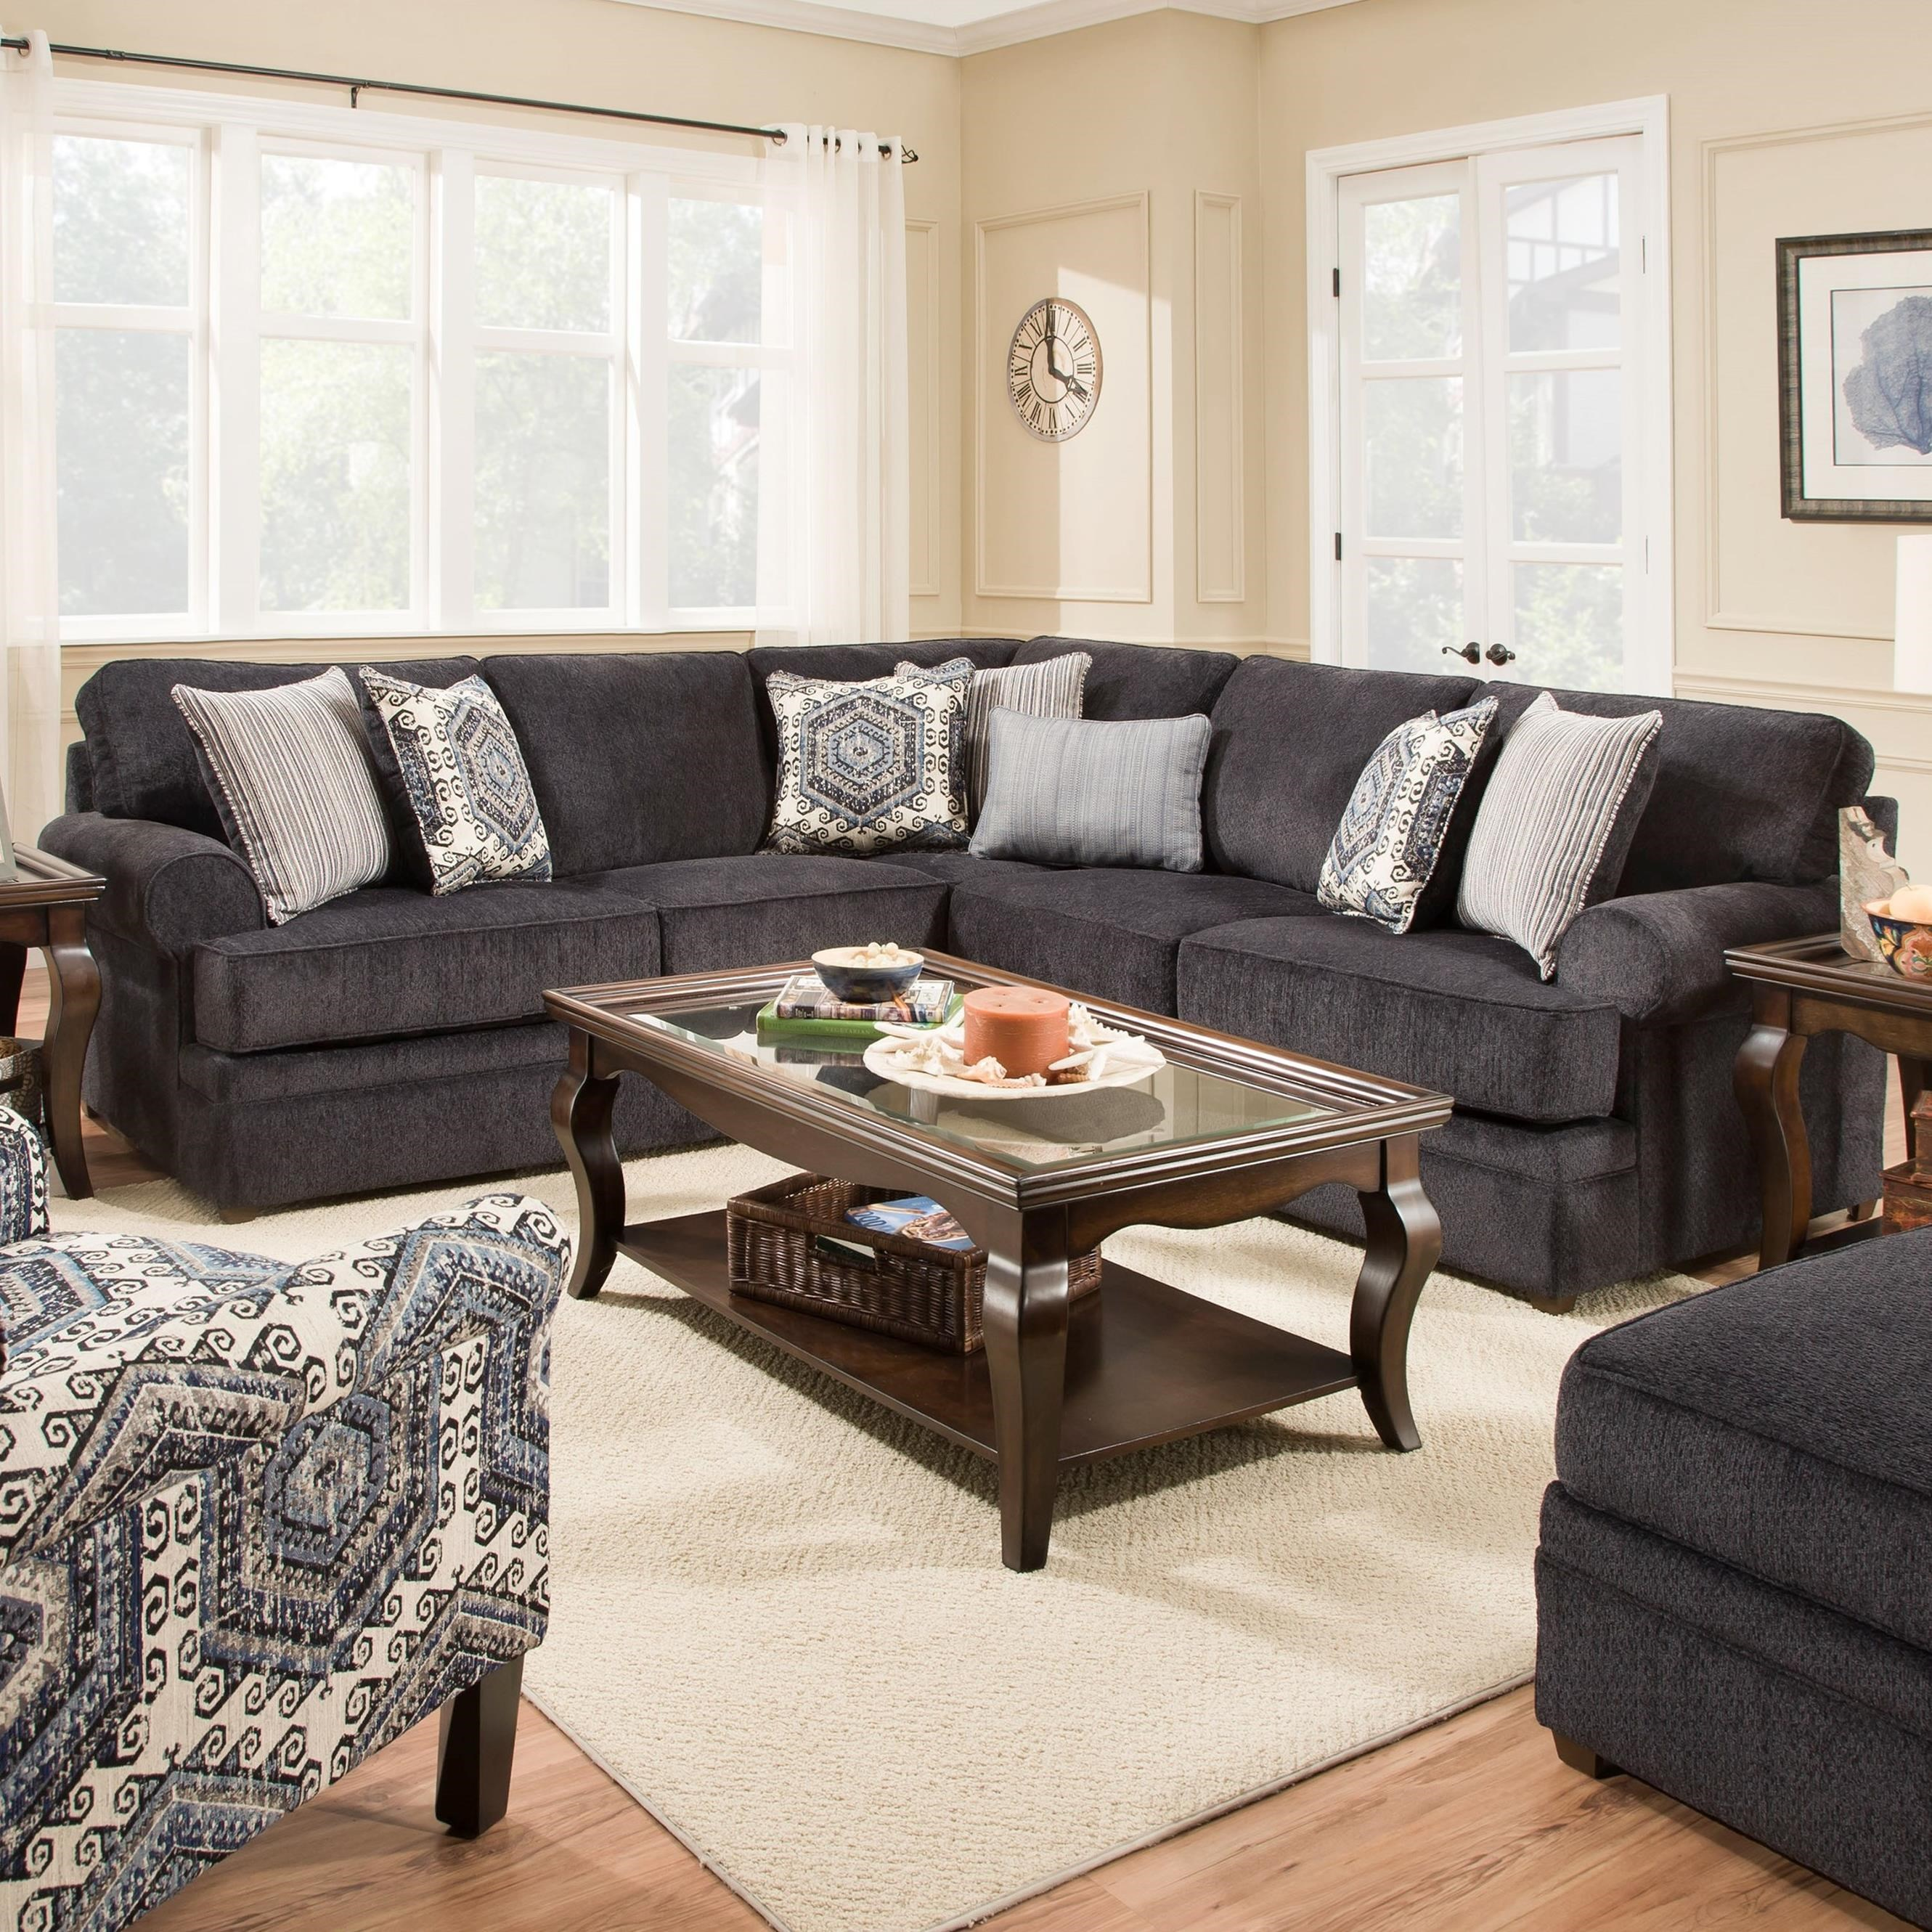 Simmons upholstery 8530 br transitional sectional sofa for Simmons upholstery sectional sofa